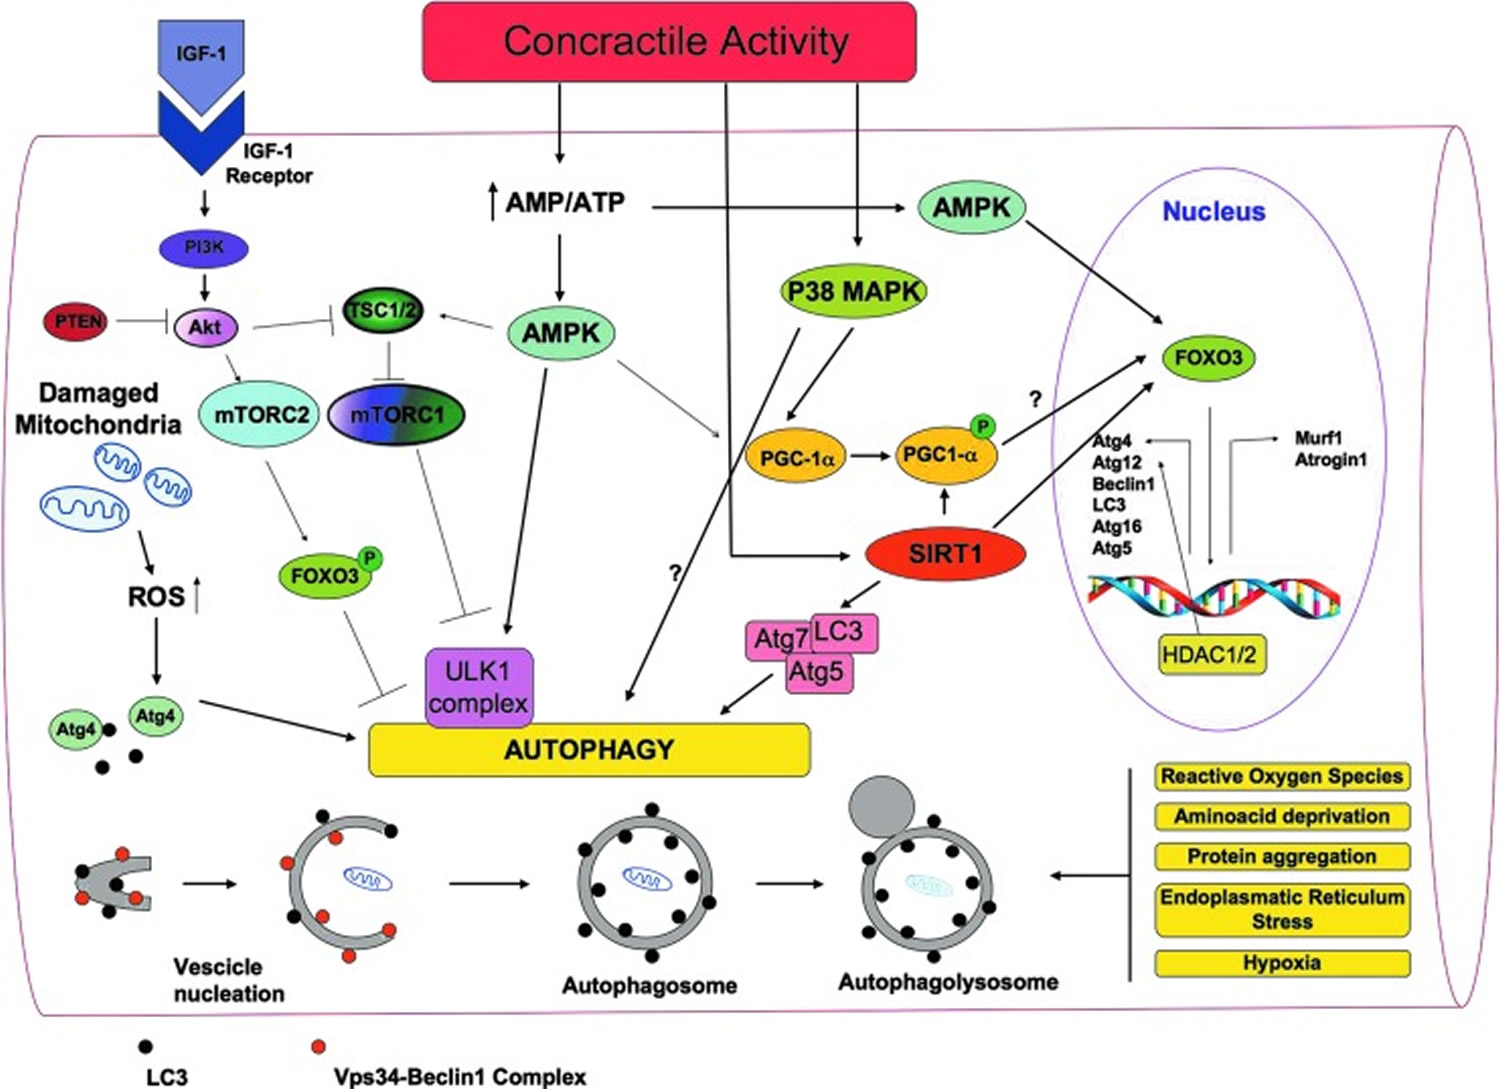 signaling molecules involved in the regulation of autophagy in skeletal muscles